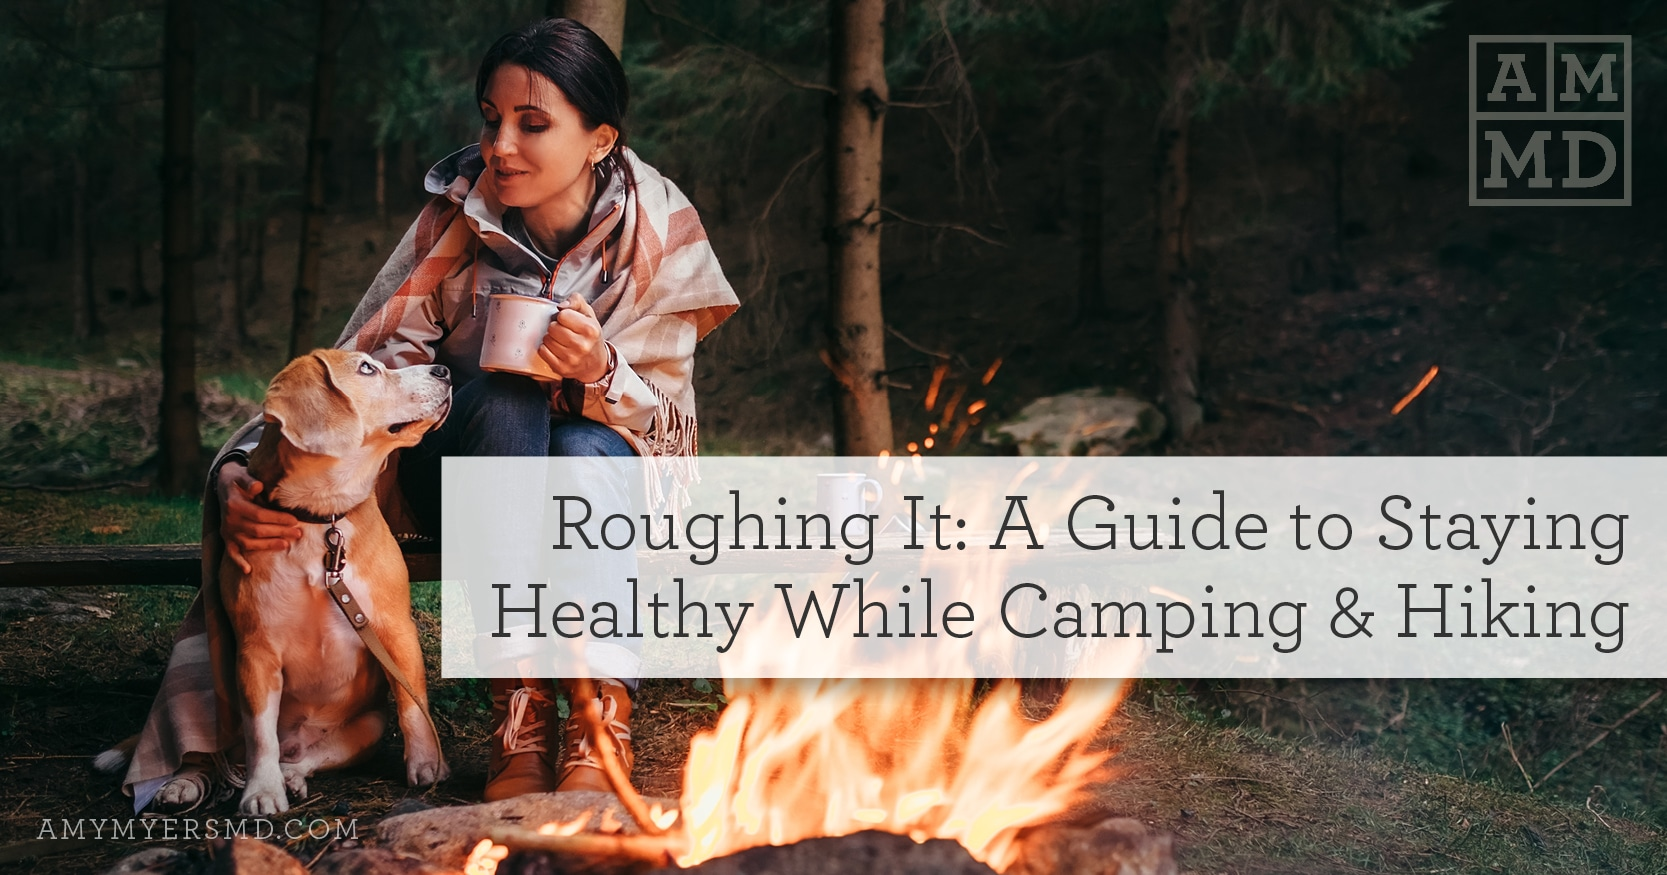 Roughing It: A Guide to Staying Healthy While Camping & Hiking - A Woman by a Campfire with Her Dog - Featured Image - Amy Myers MD